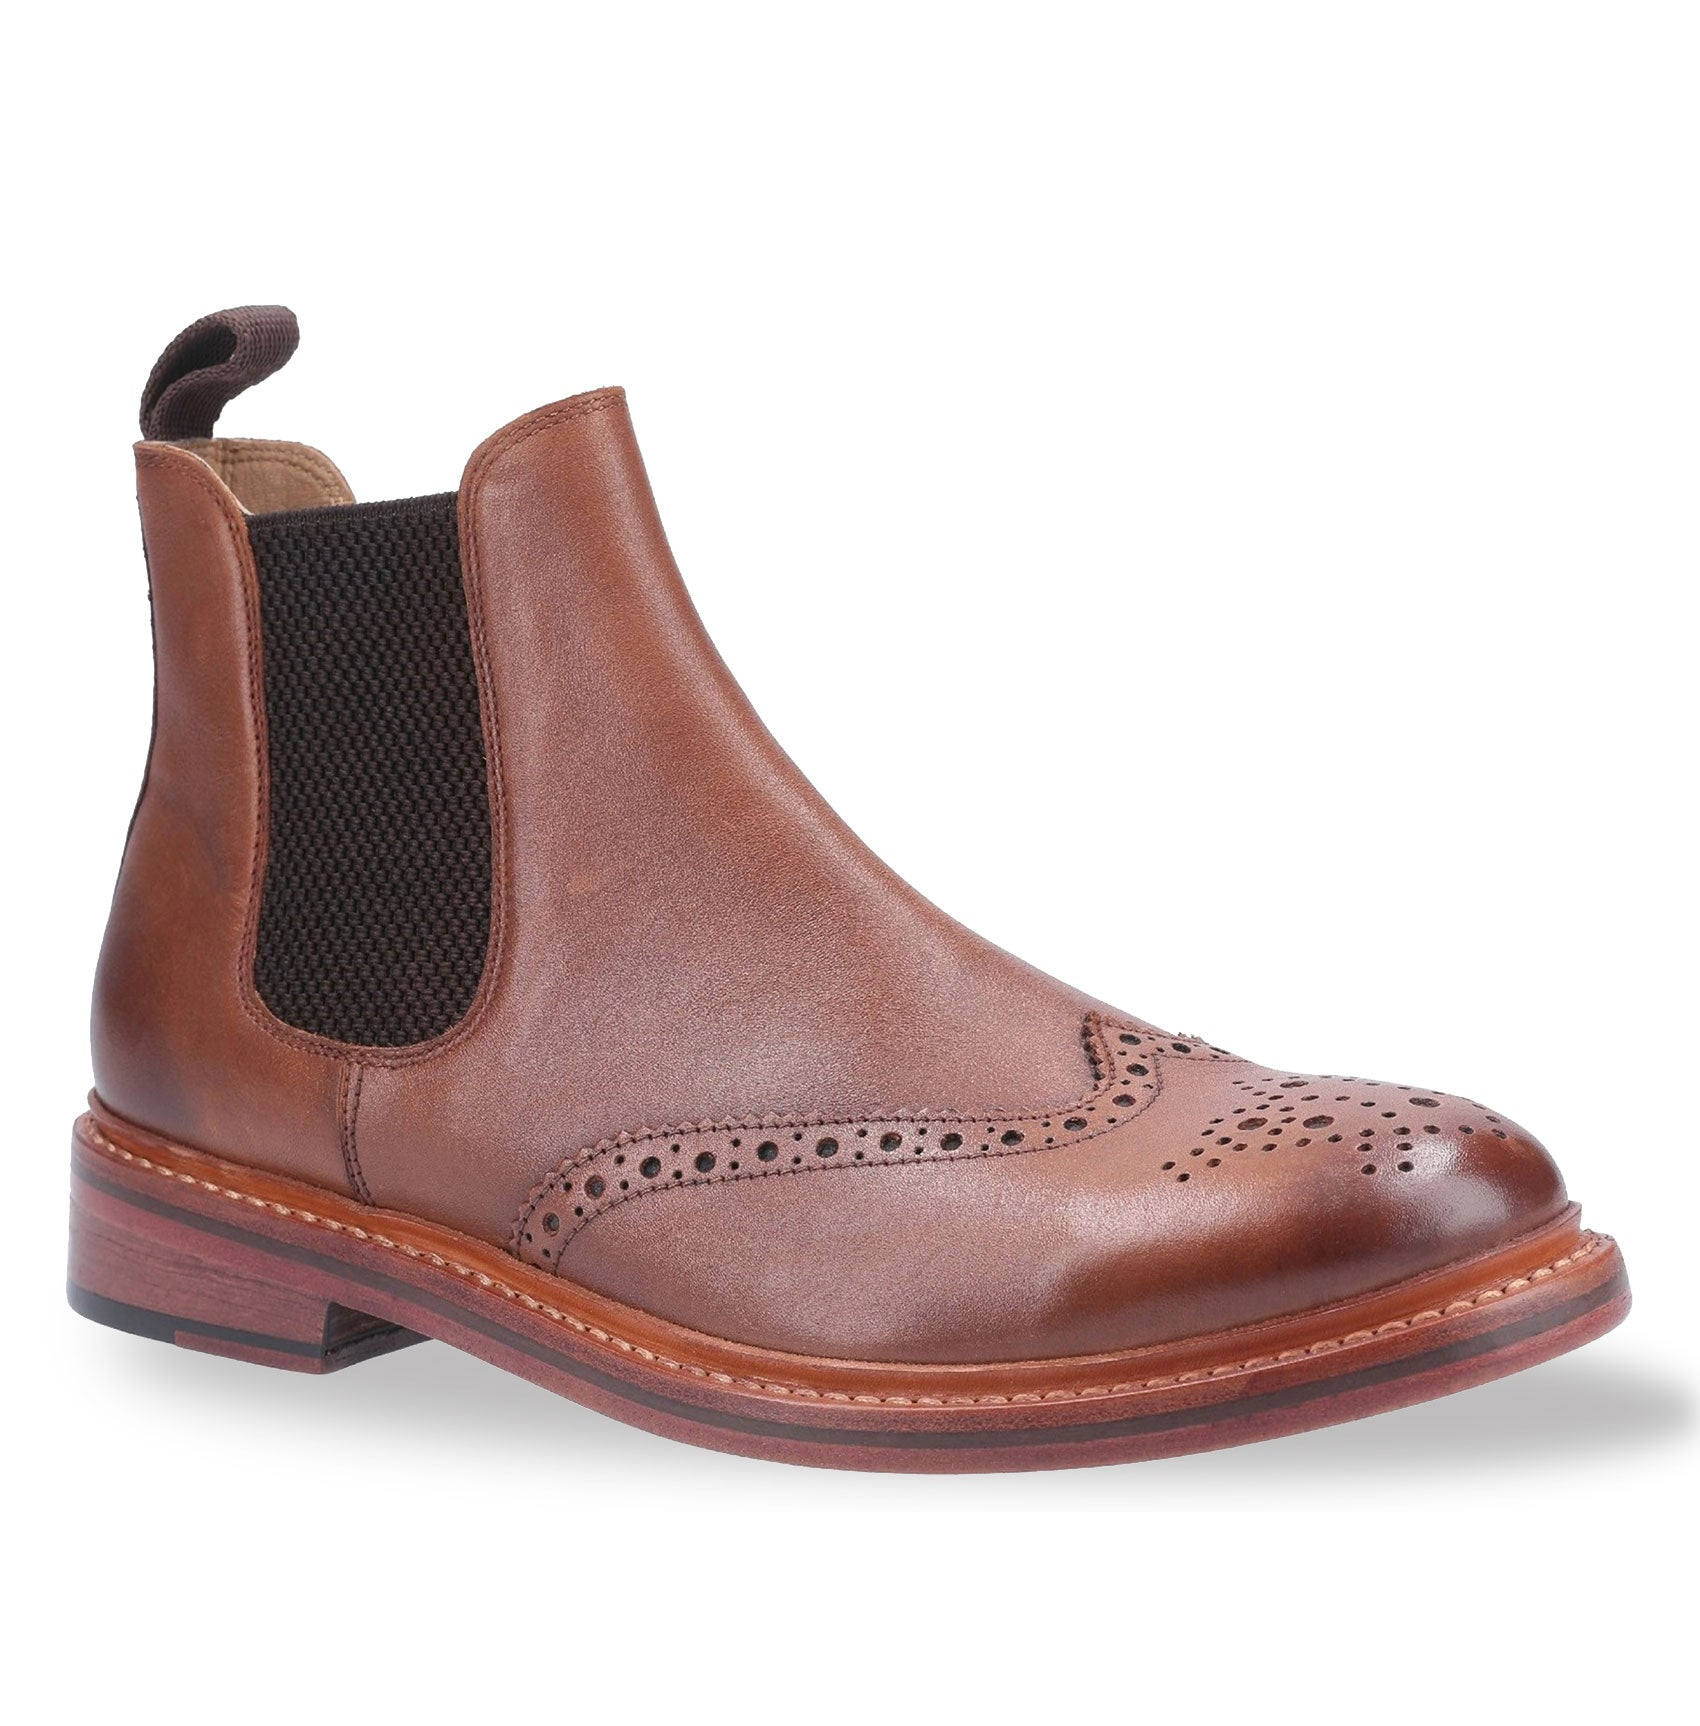 Brown Tan Cotswold Siddington Leather Brogue Chelsea Boot